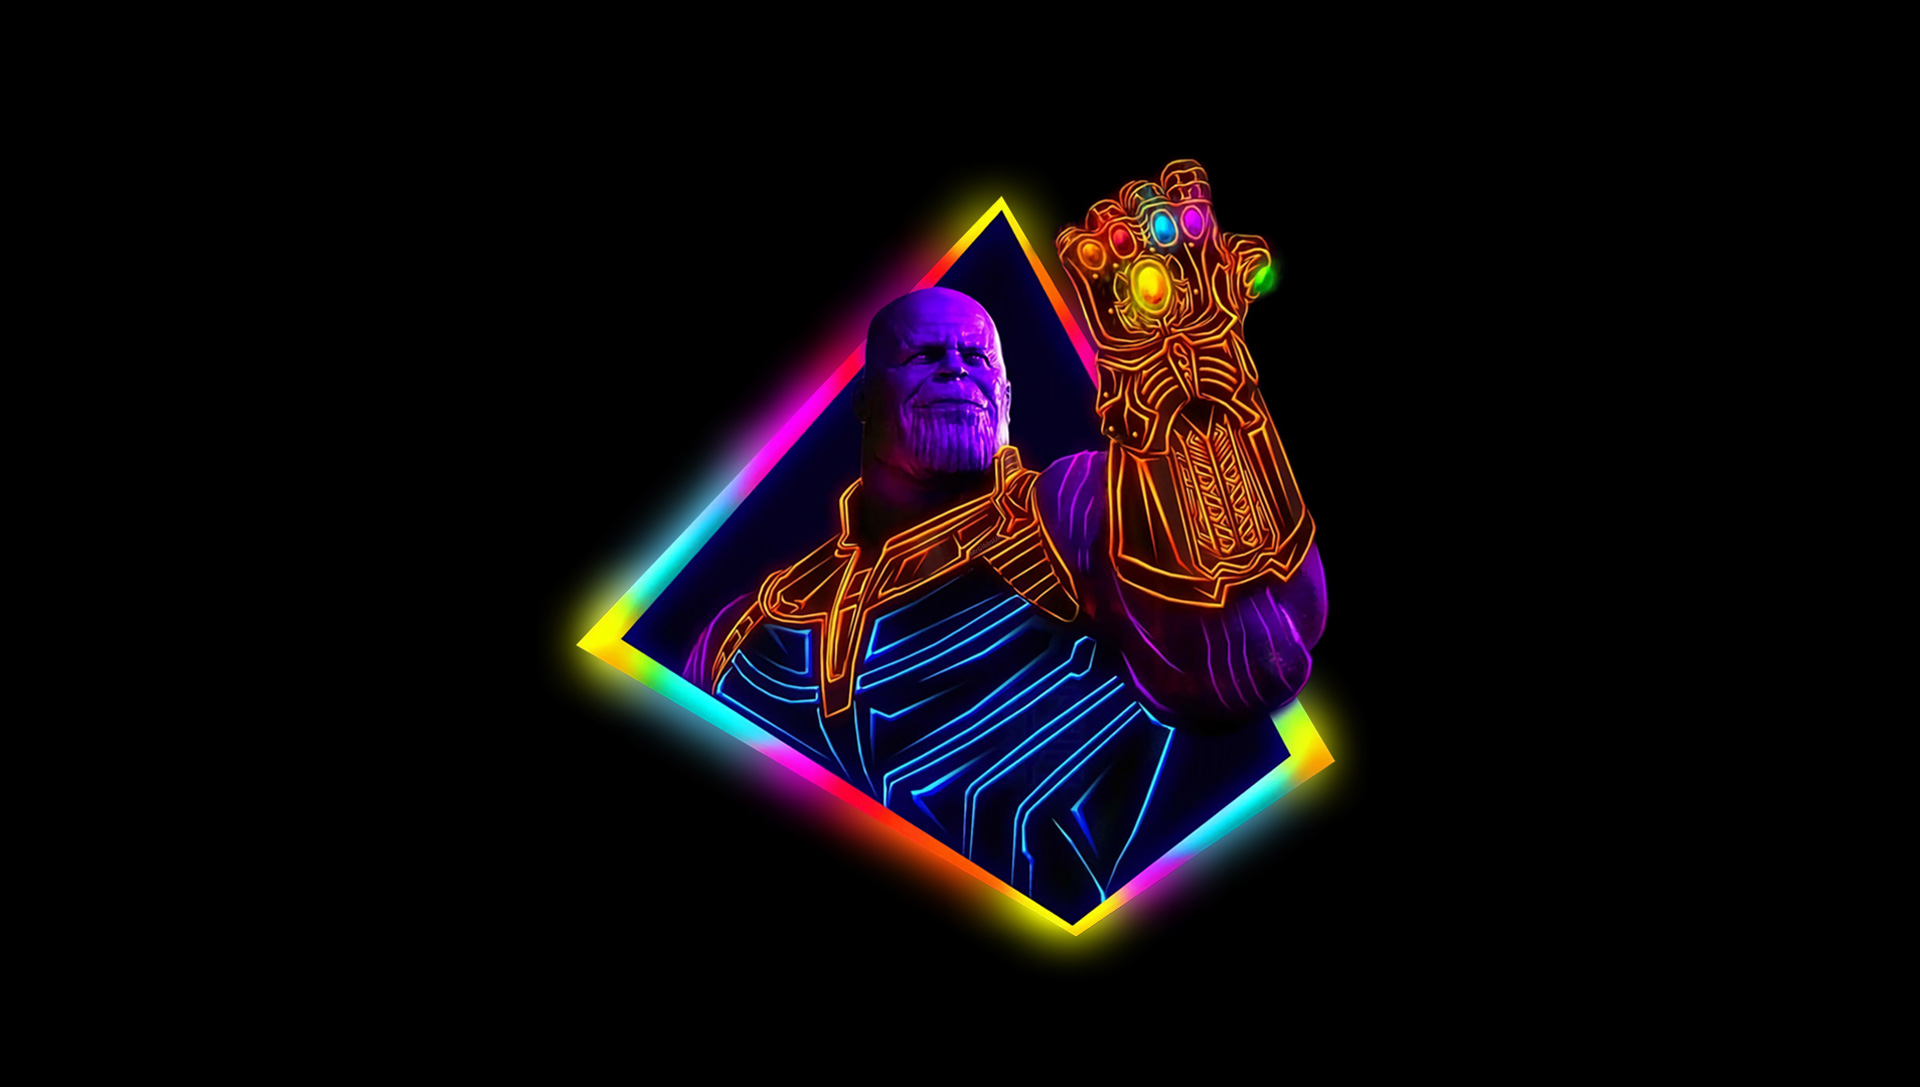 1366x768 thanos avengers infinity war 80s style artwork 1366x768 resolution hd 4k wallpapers - Infinity war hd download ...